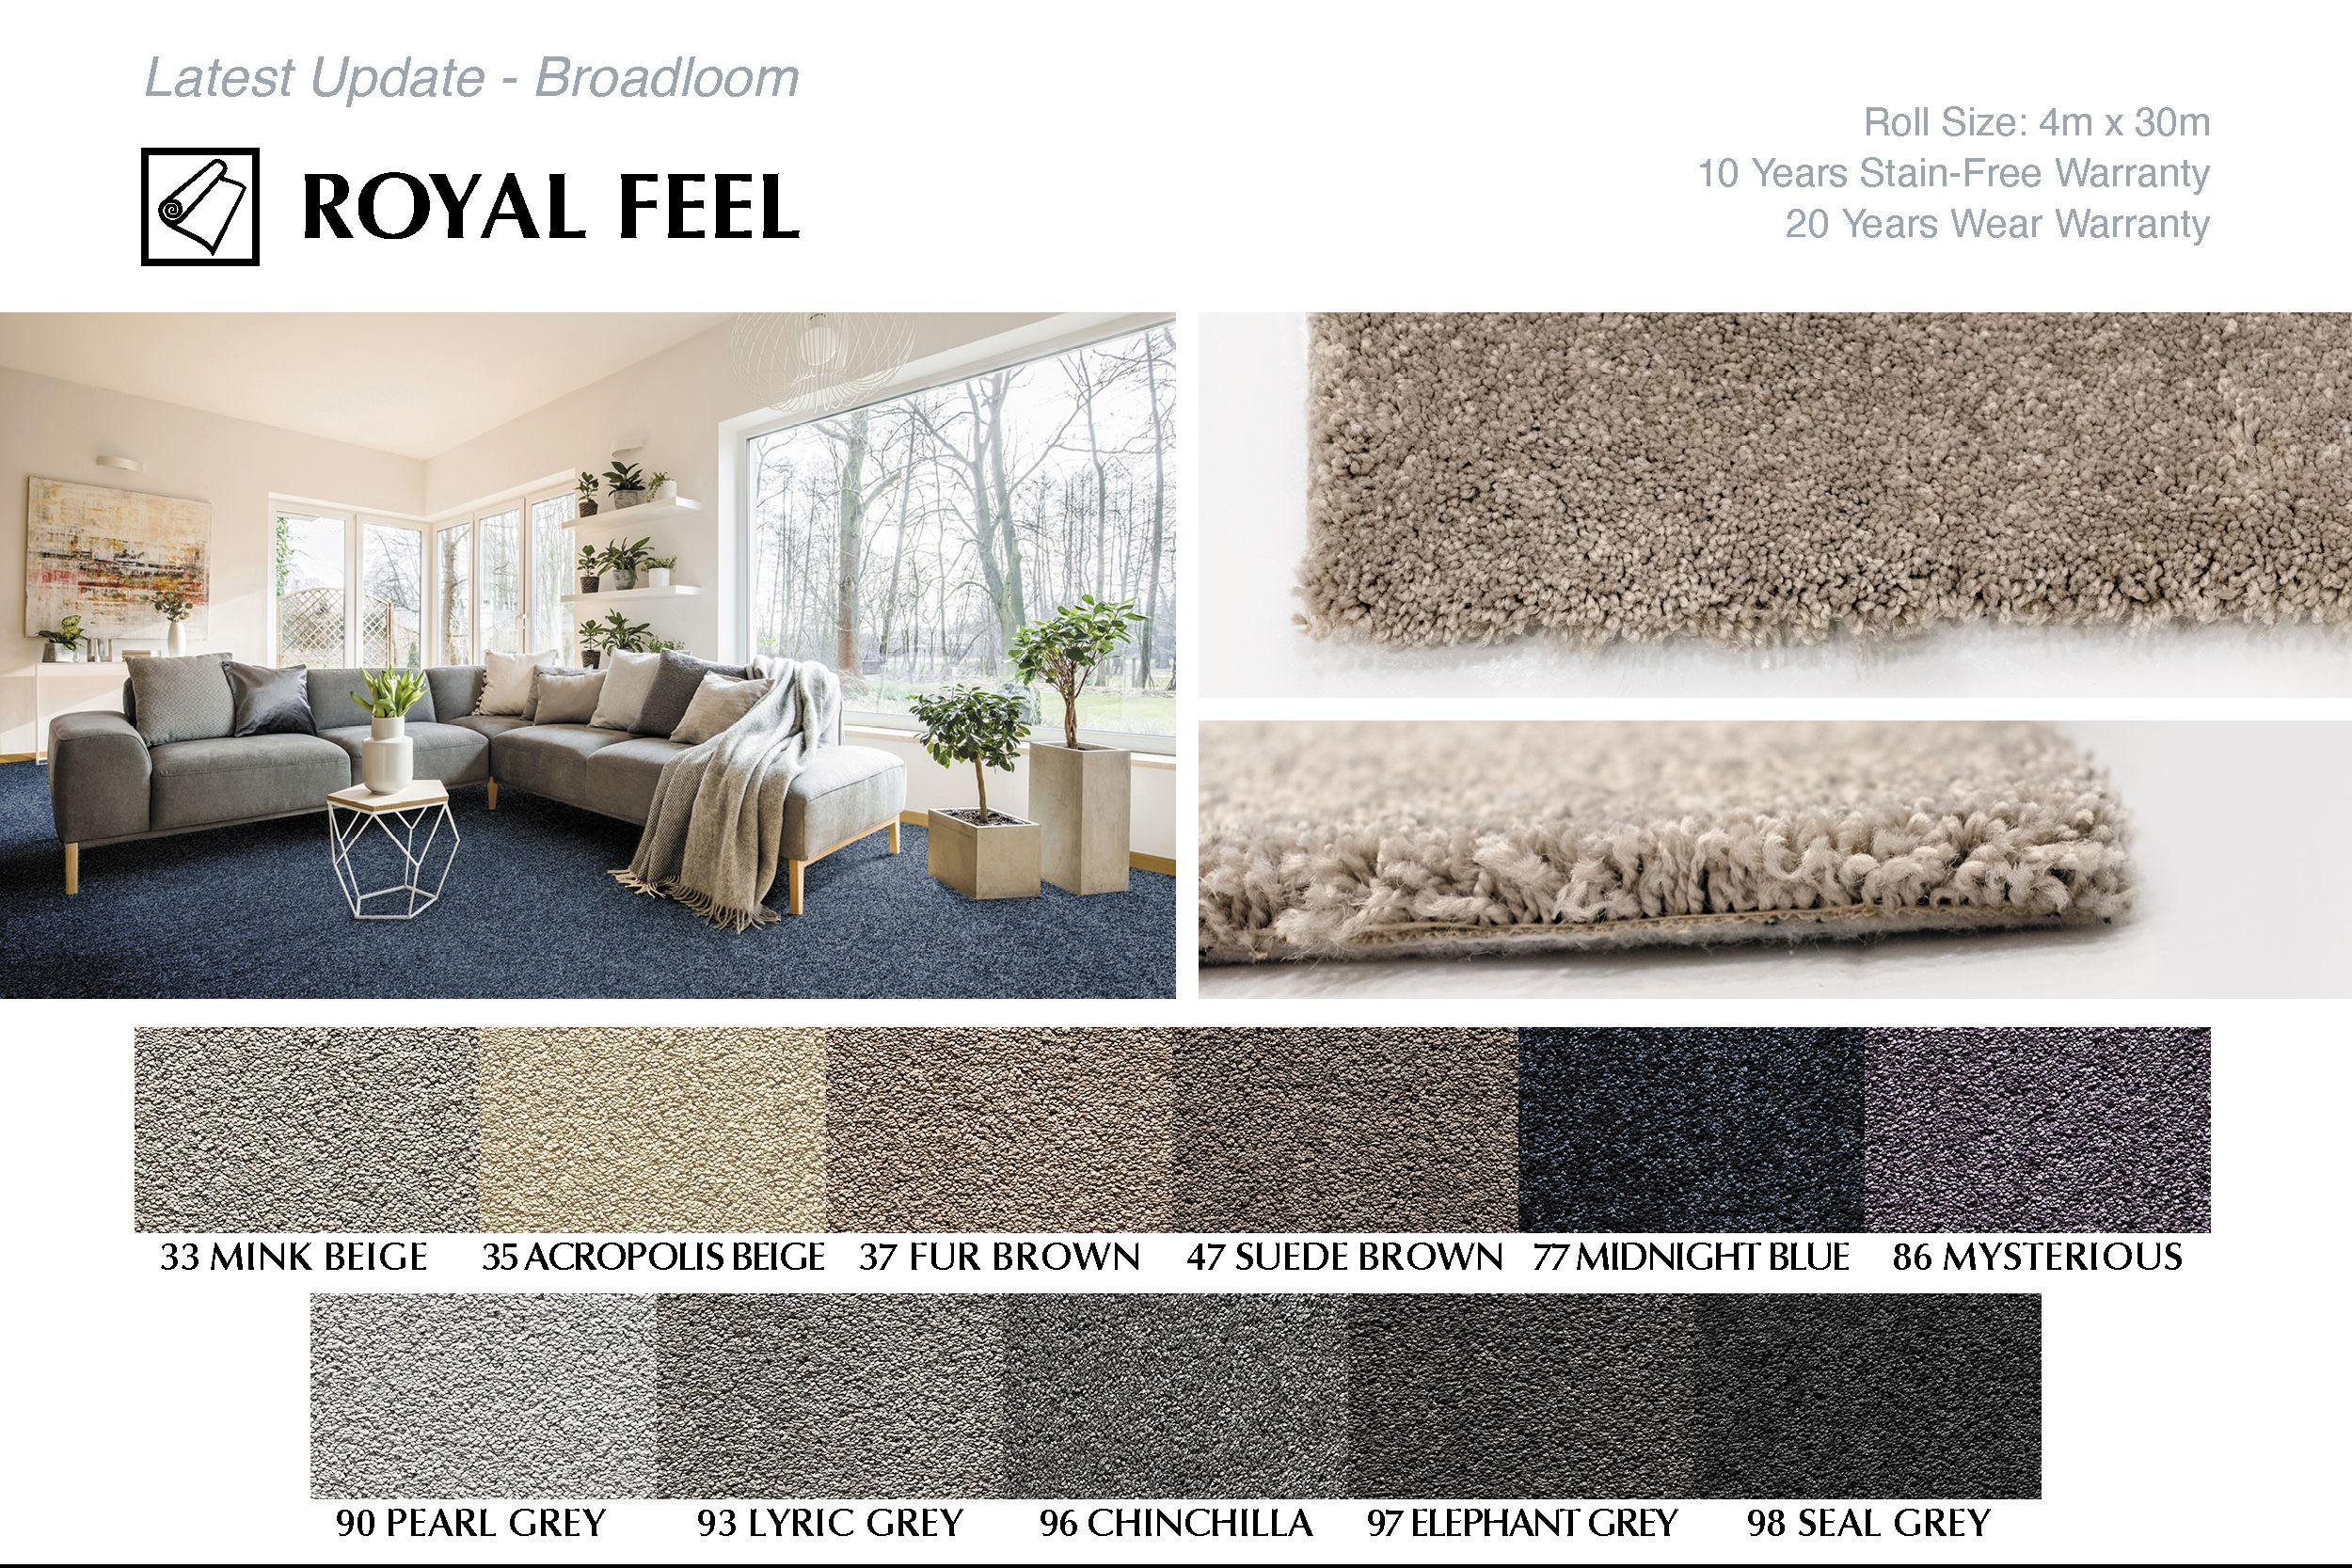 New Broadloom Carpet ROYAL FEEL in 2020 Modern rugs